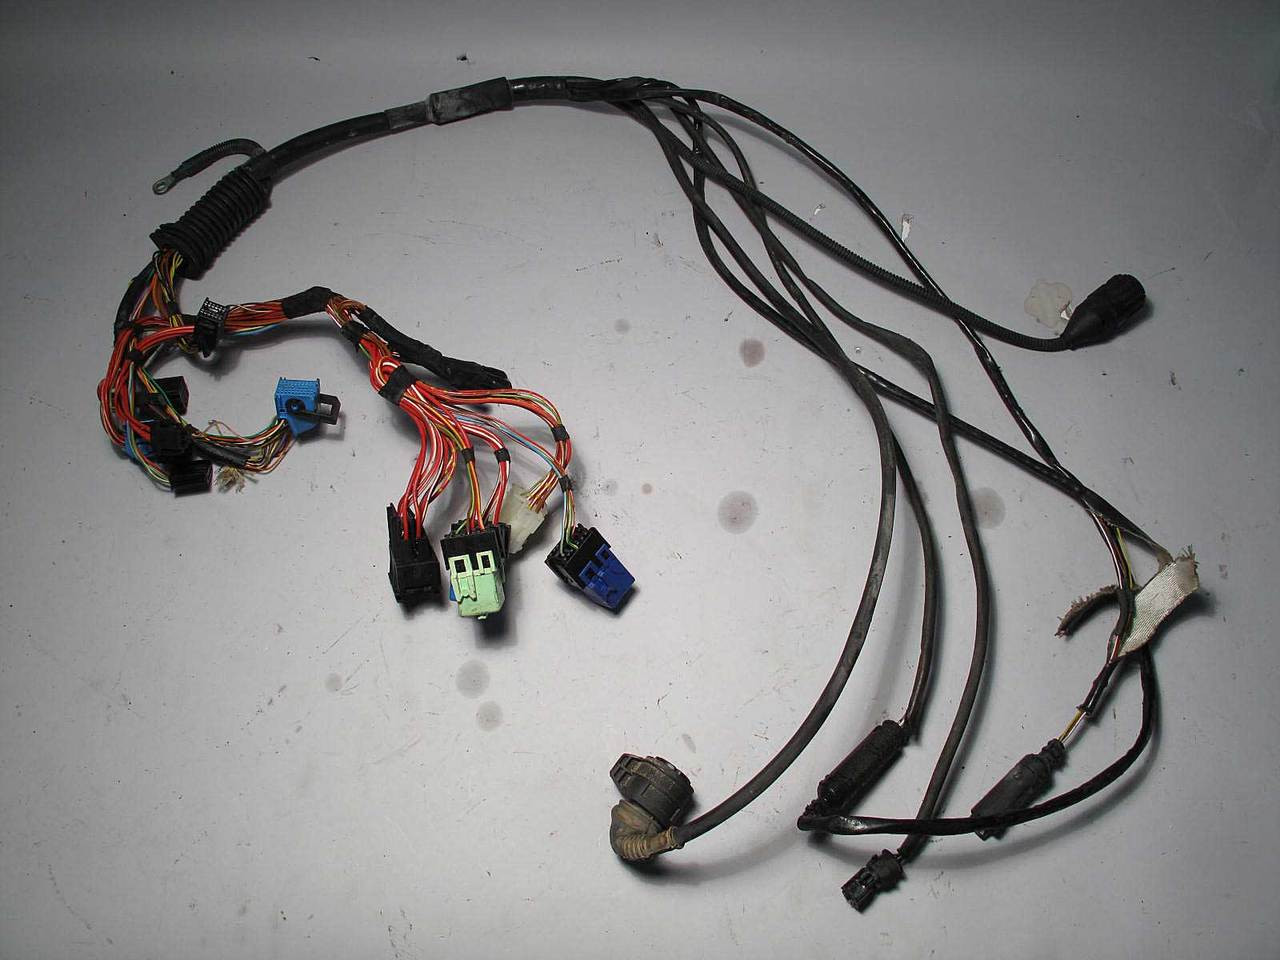 hight resolution of bmw e46 3 series m54 automatic transmission wiring harness 2001 2002 bmw